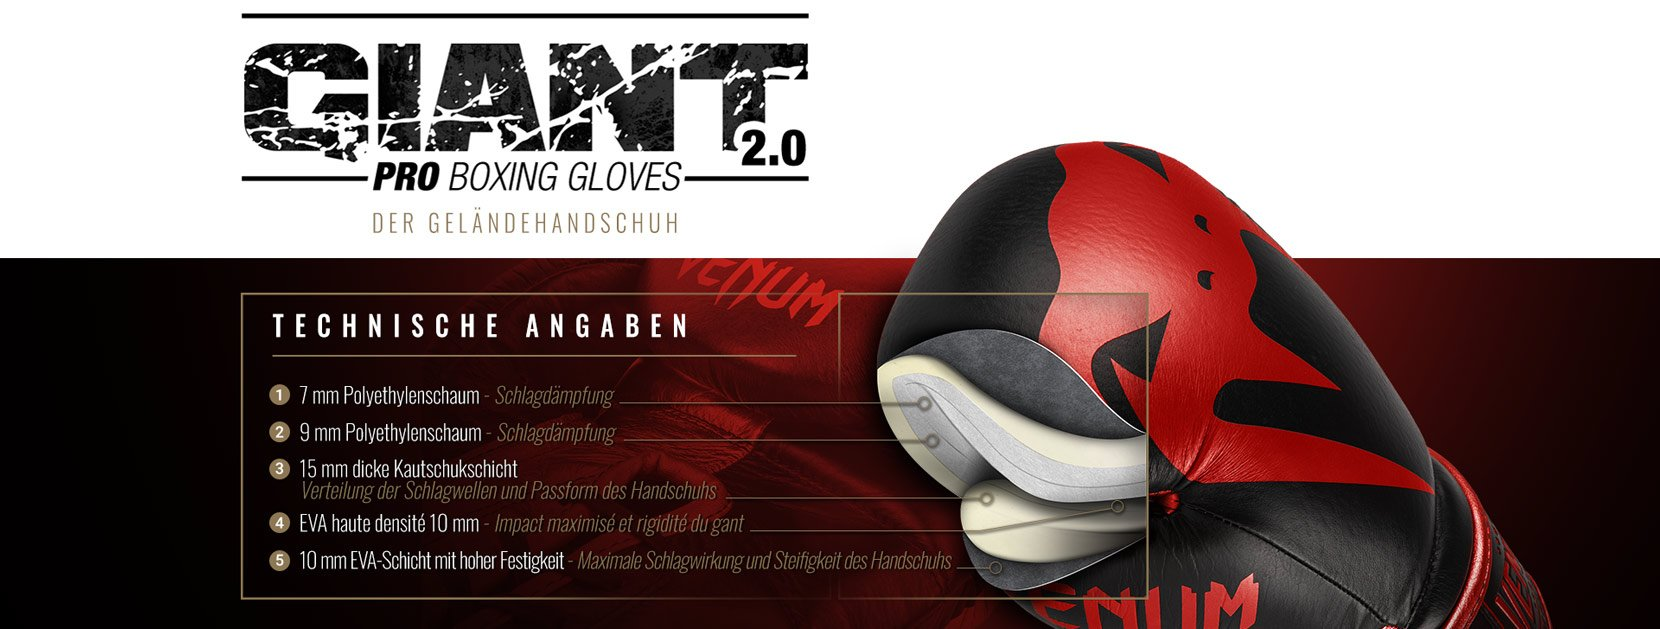 Professionelle Boxhandschuhe Giant 2.0